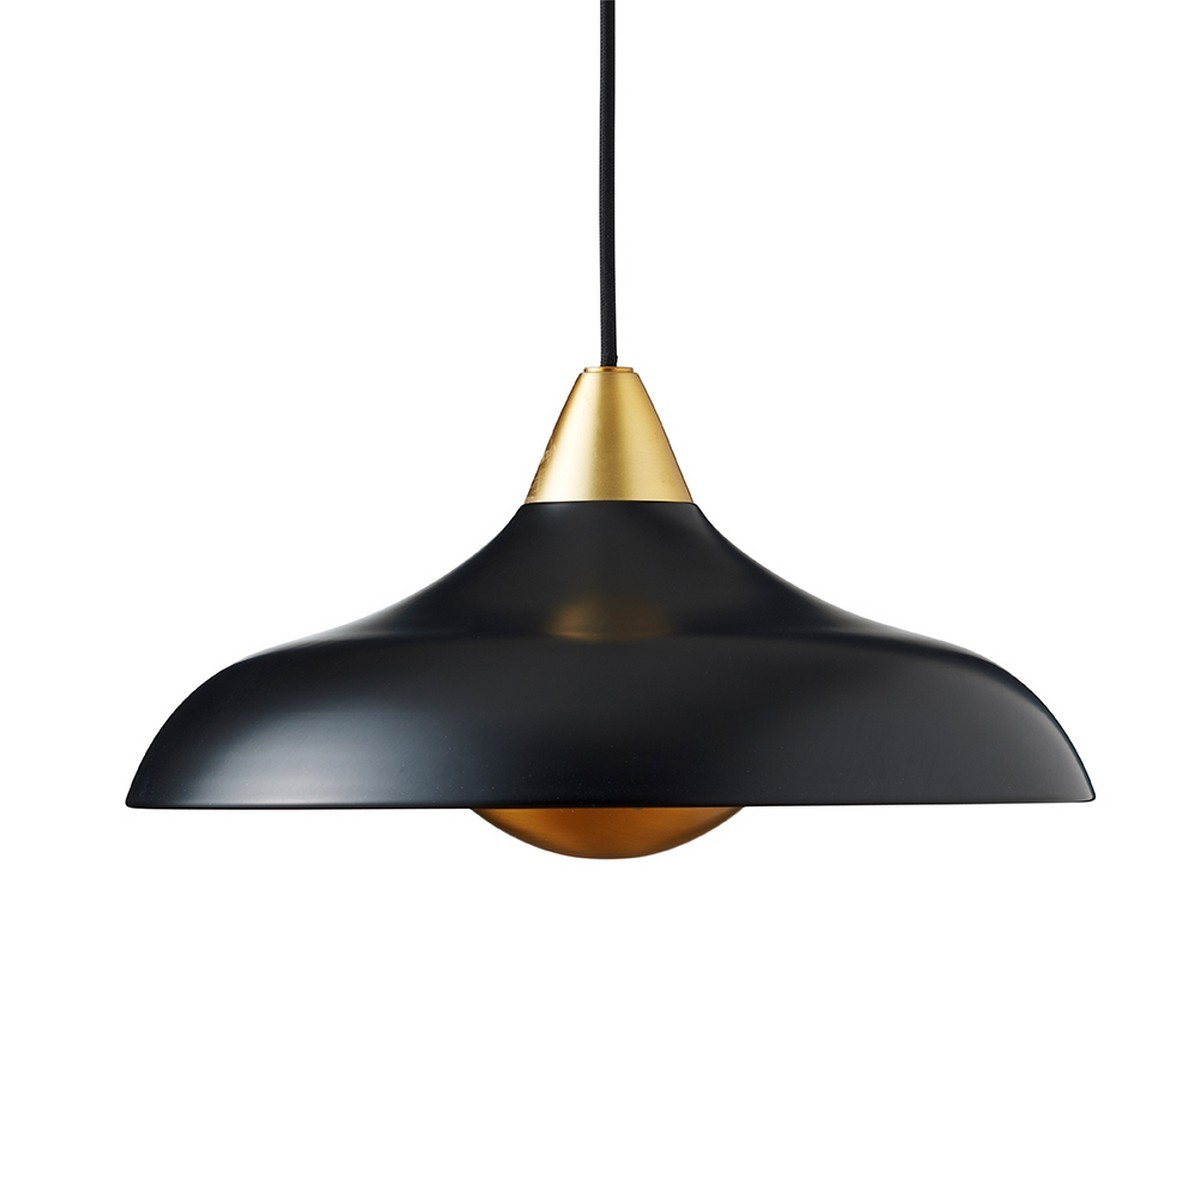 Suspension Noir Metal Suspension Ronde Design Metal Noir Laiton Superliving Urban Wide Kdesign